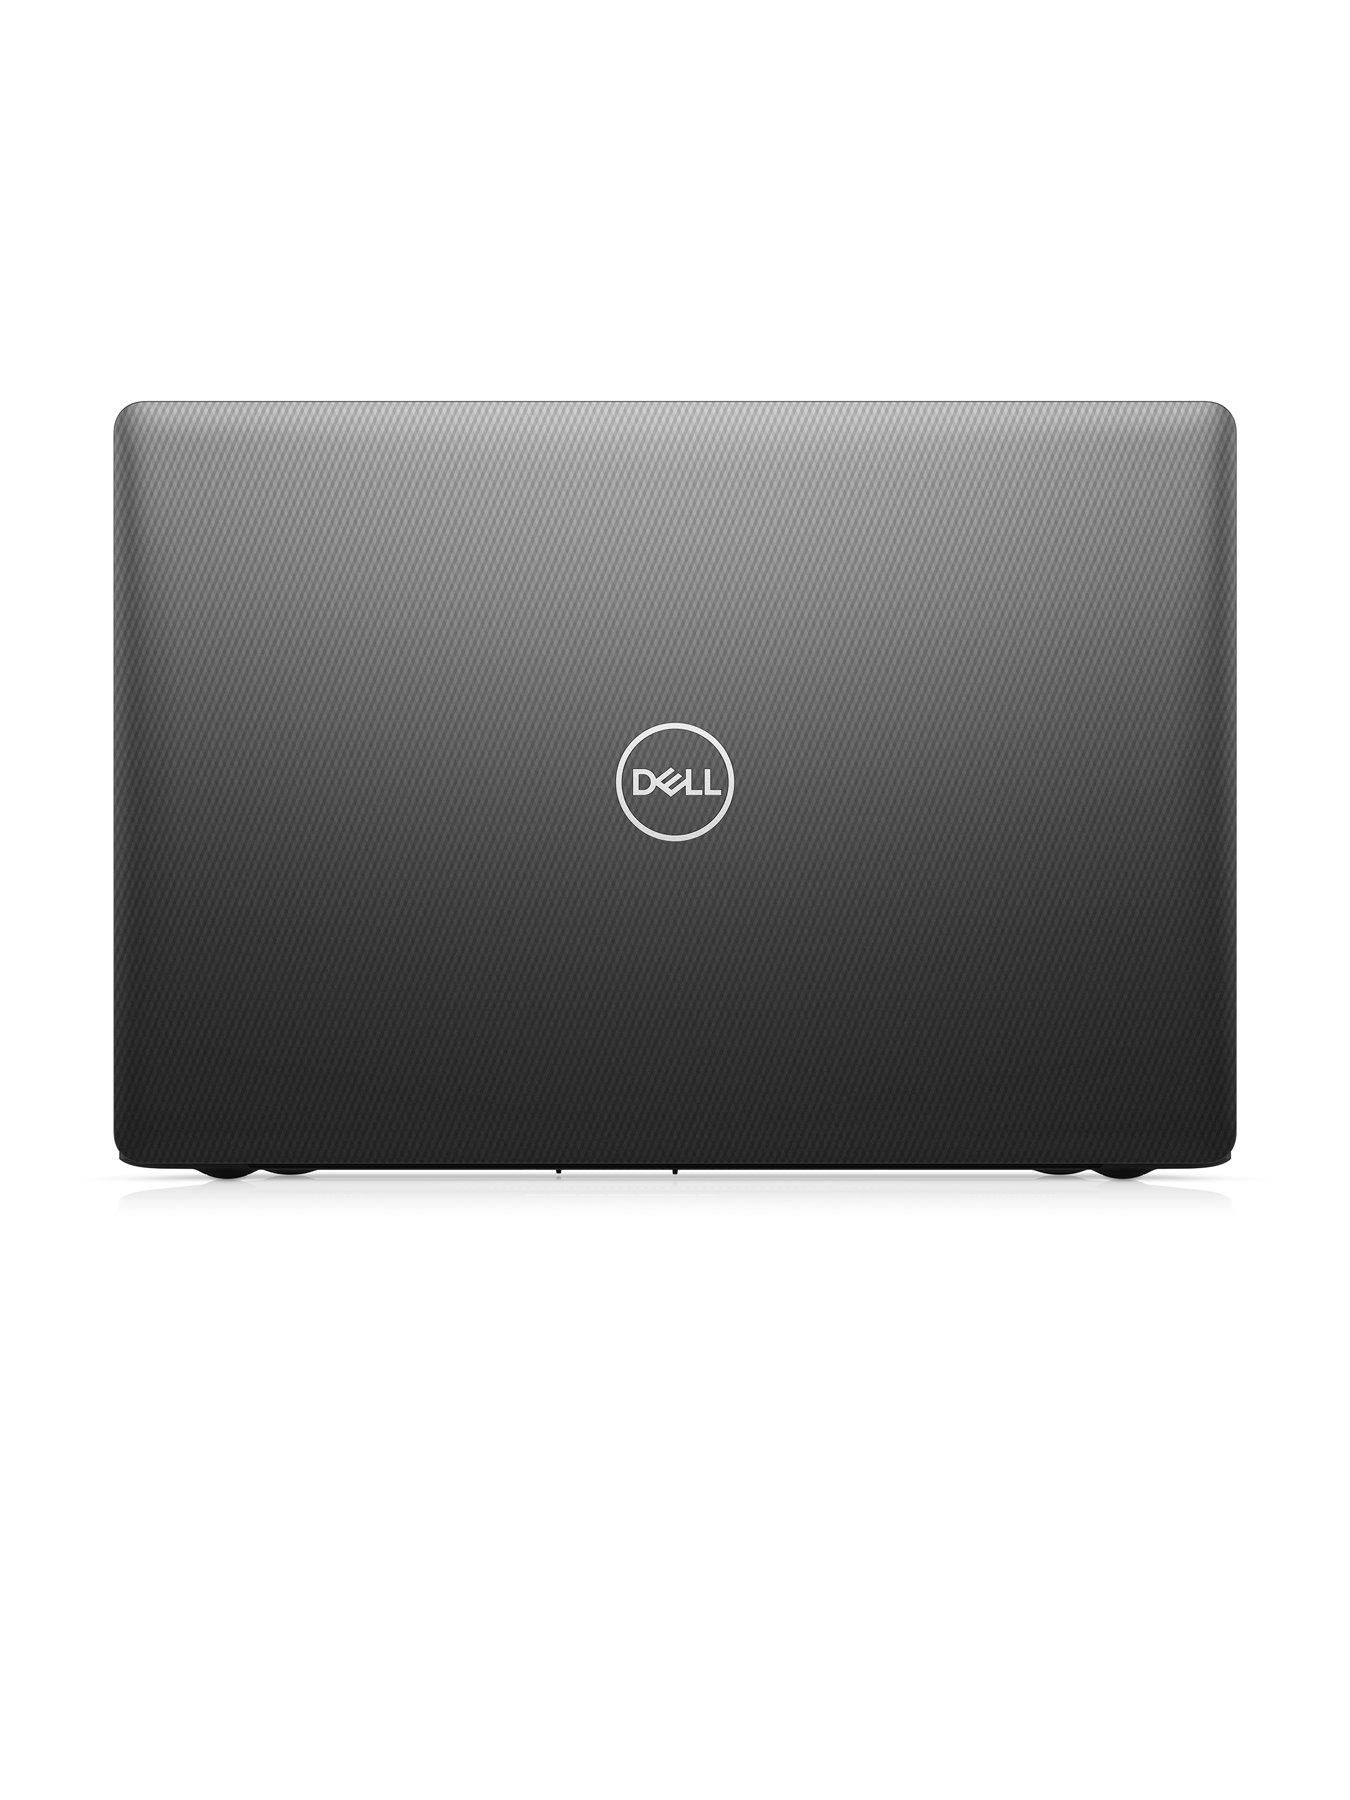 Dell Inspiron 15 3000 Series Intel Core I3 Processor 4gb Ddr4 Ram 128gb Ssd Storage 15 6 Inch Full Hd Laptop Black Ddr4 Ram Laptop Shop Laptop